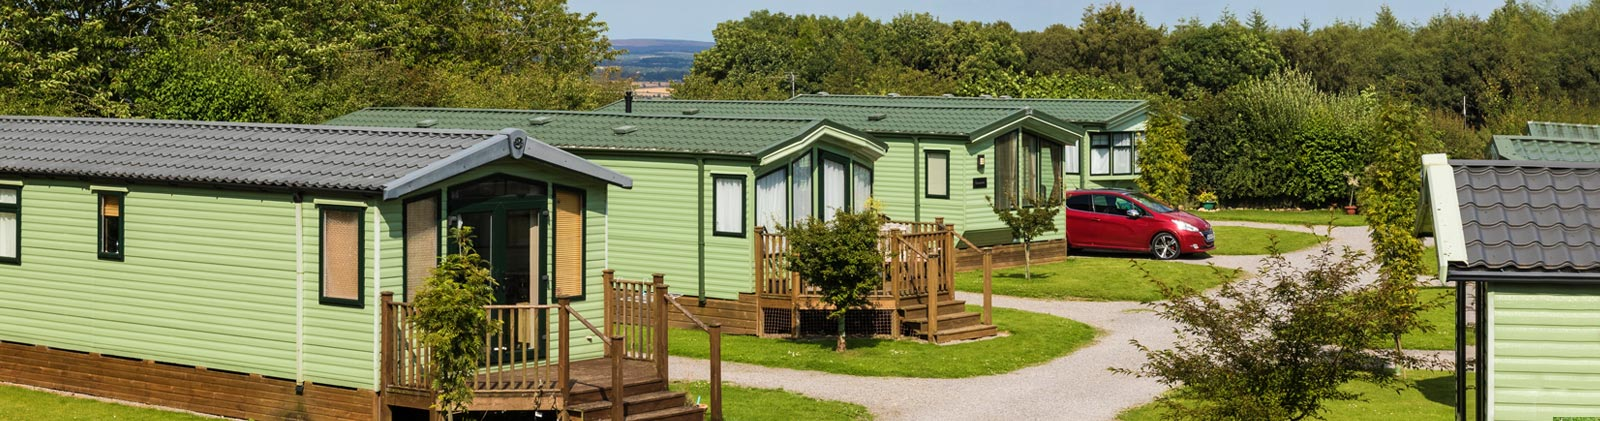 Holiday homes for sale at Golden Square holiday park in North Yorkshire